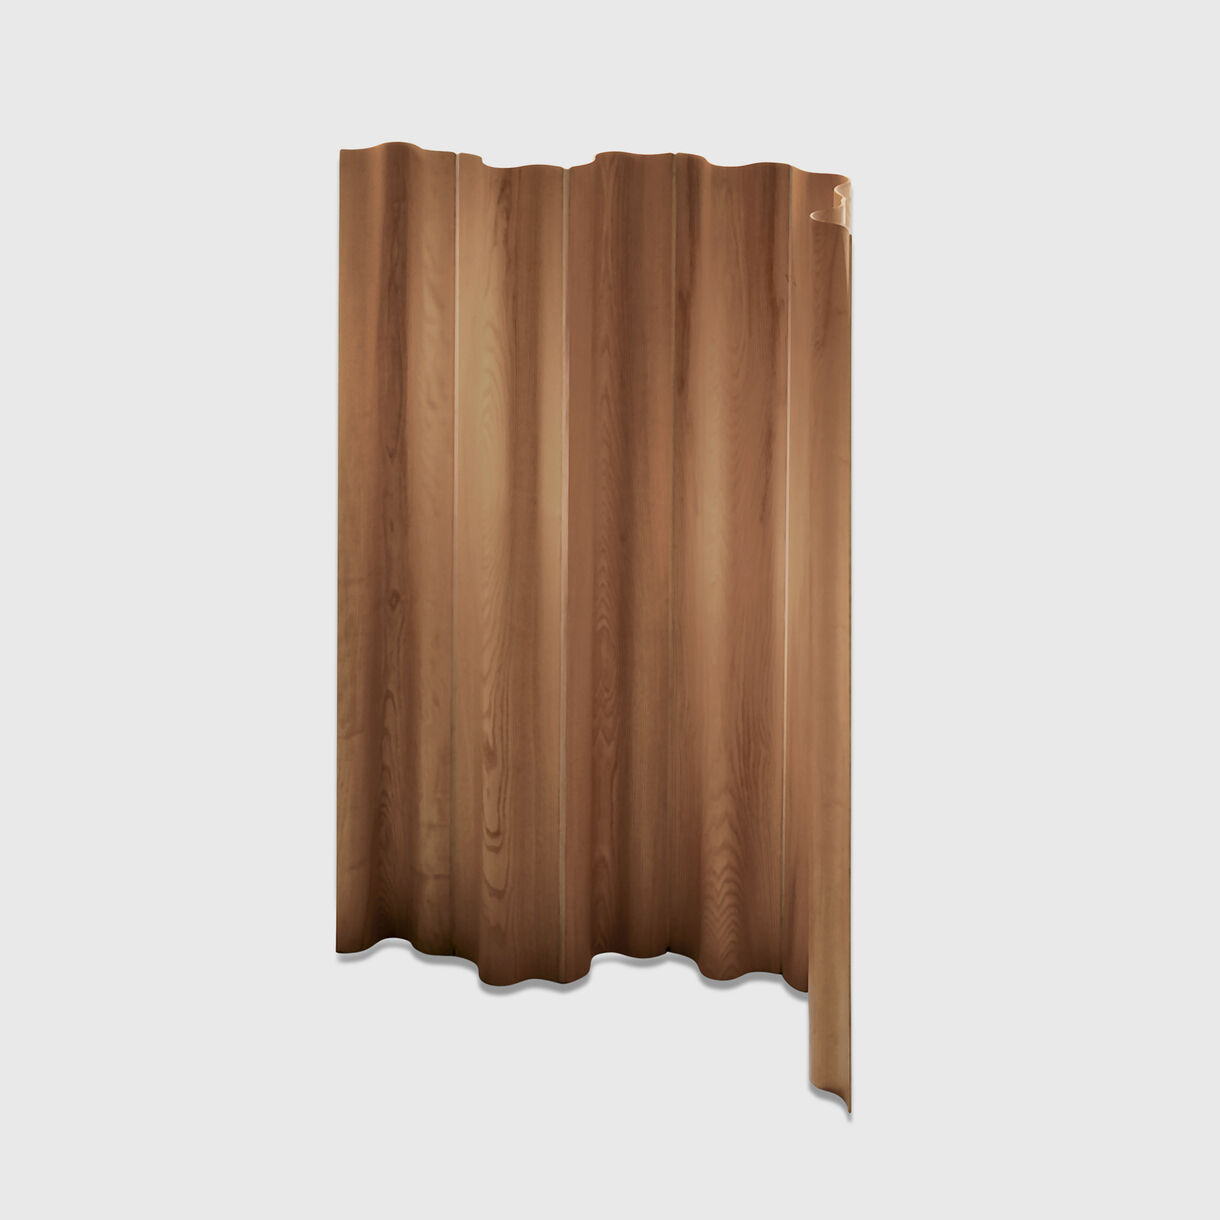 Eames Moulded Plywood Folding Screen, Walnut